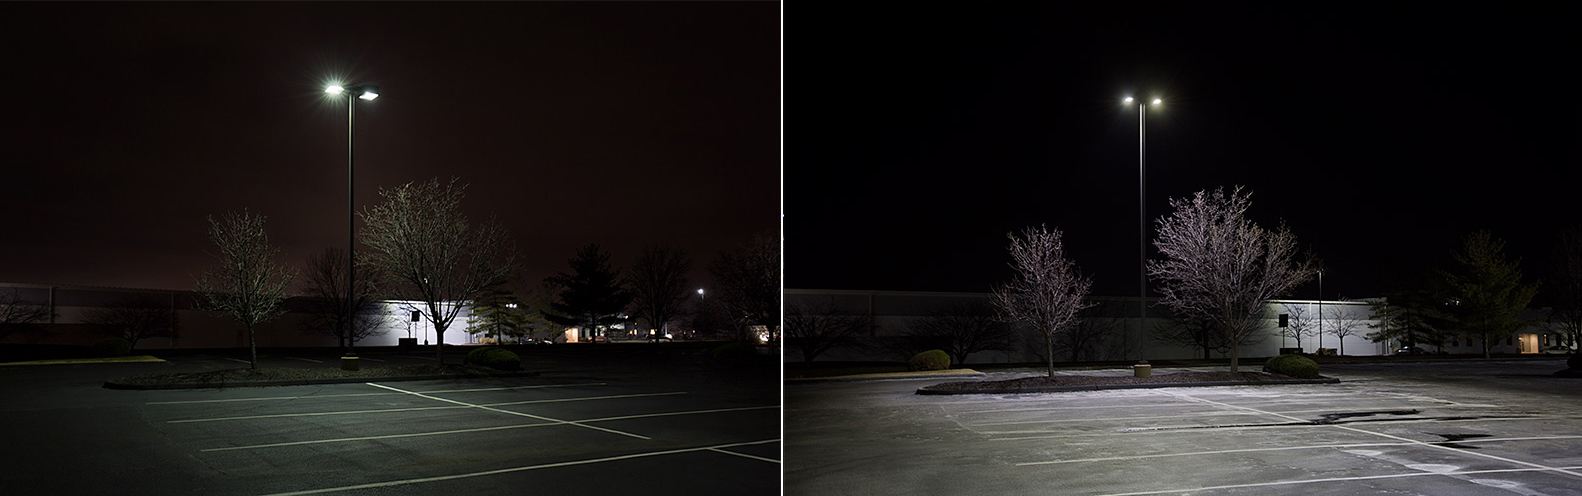 CCA LED parking lot lights project - shoebox